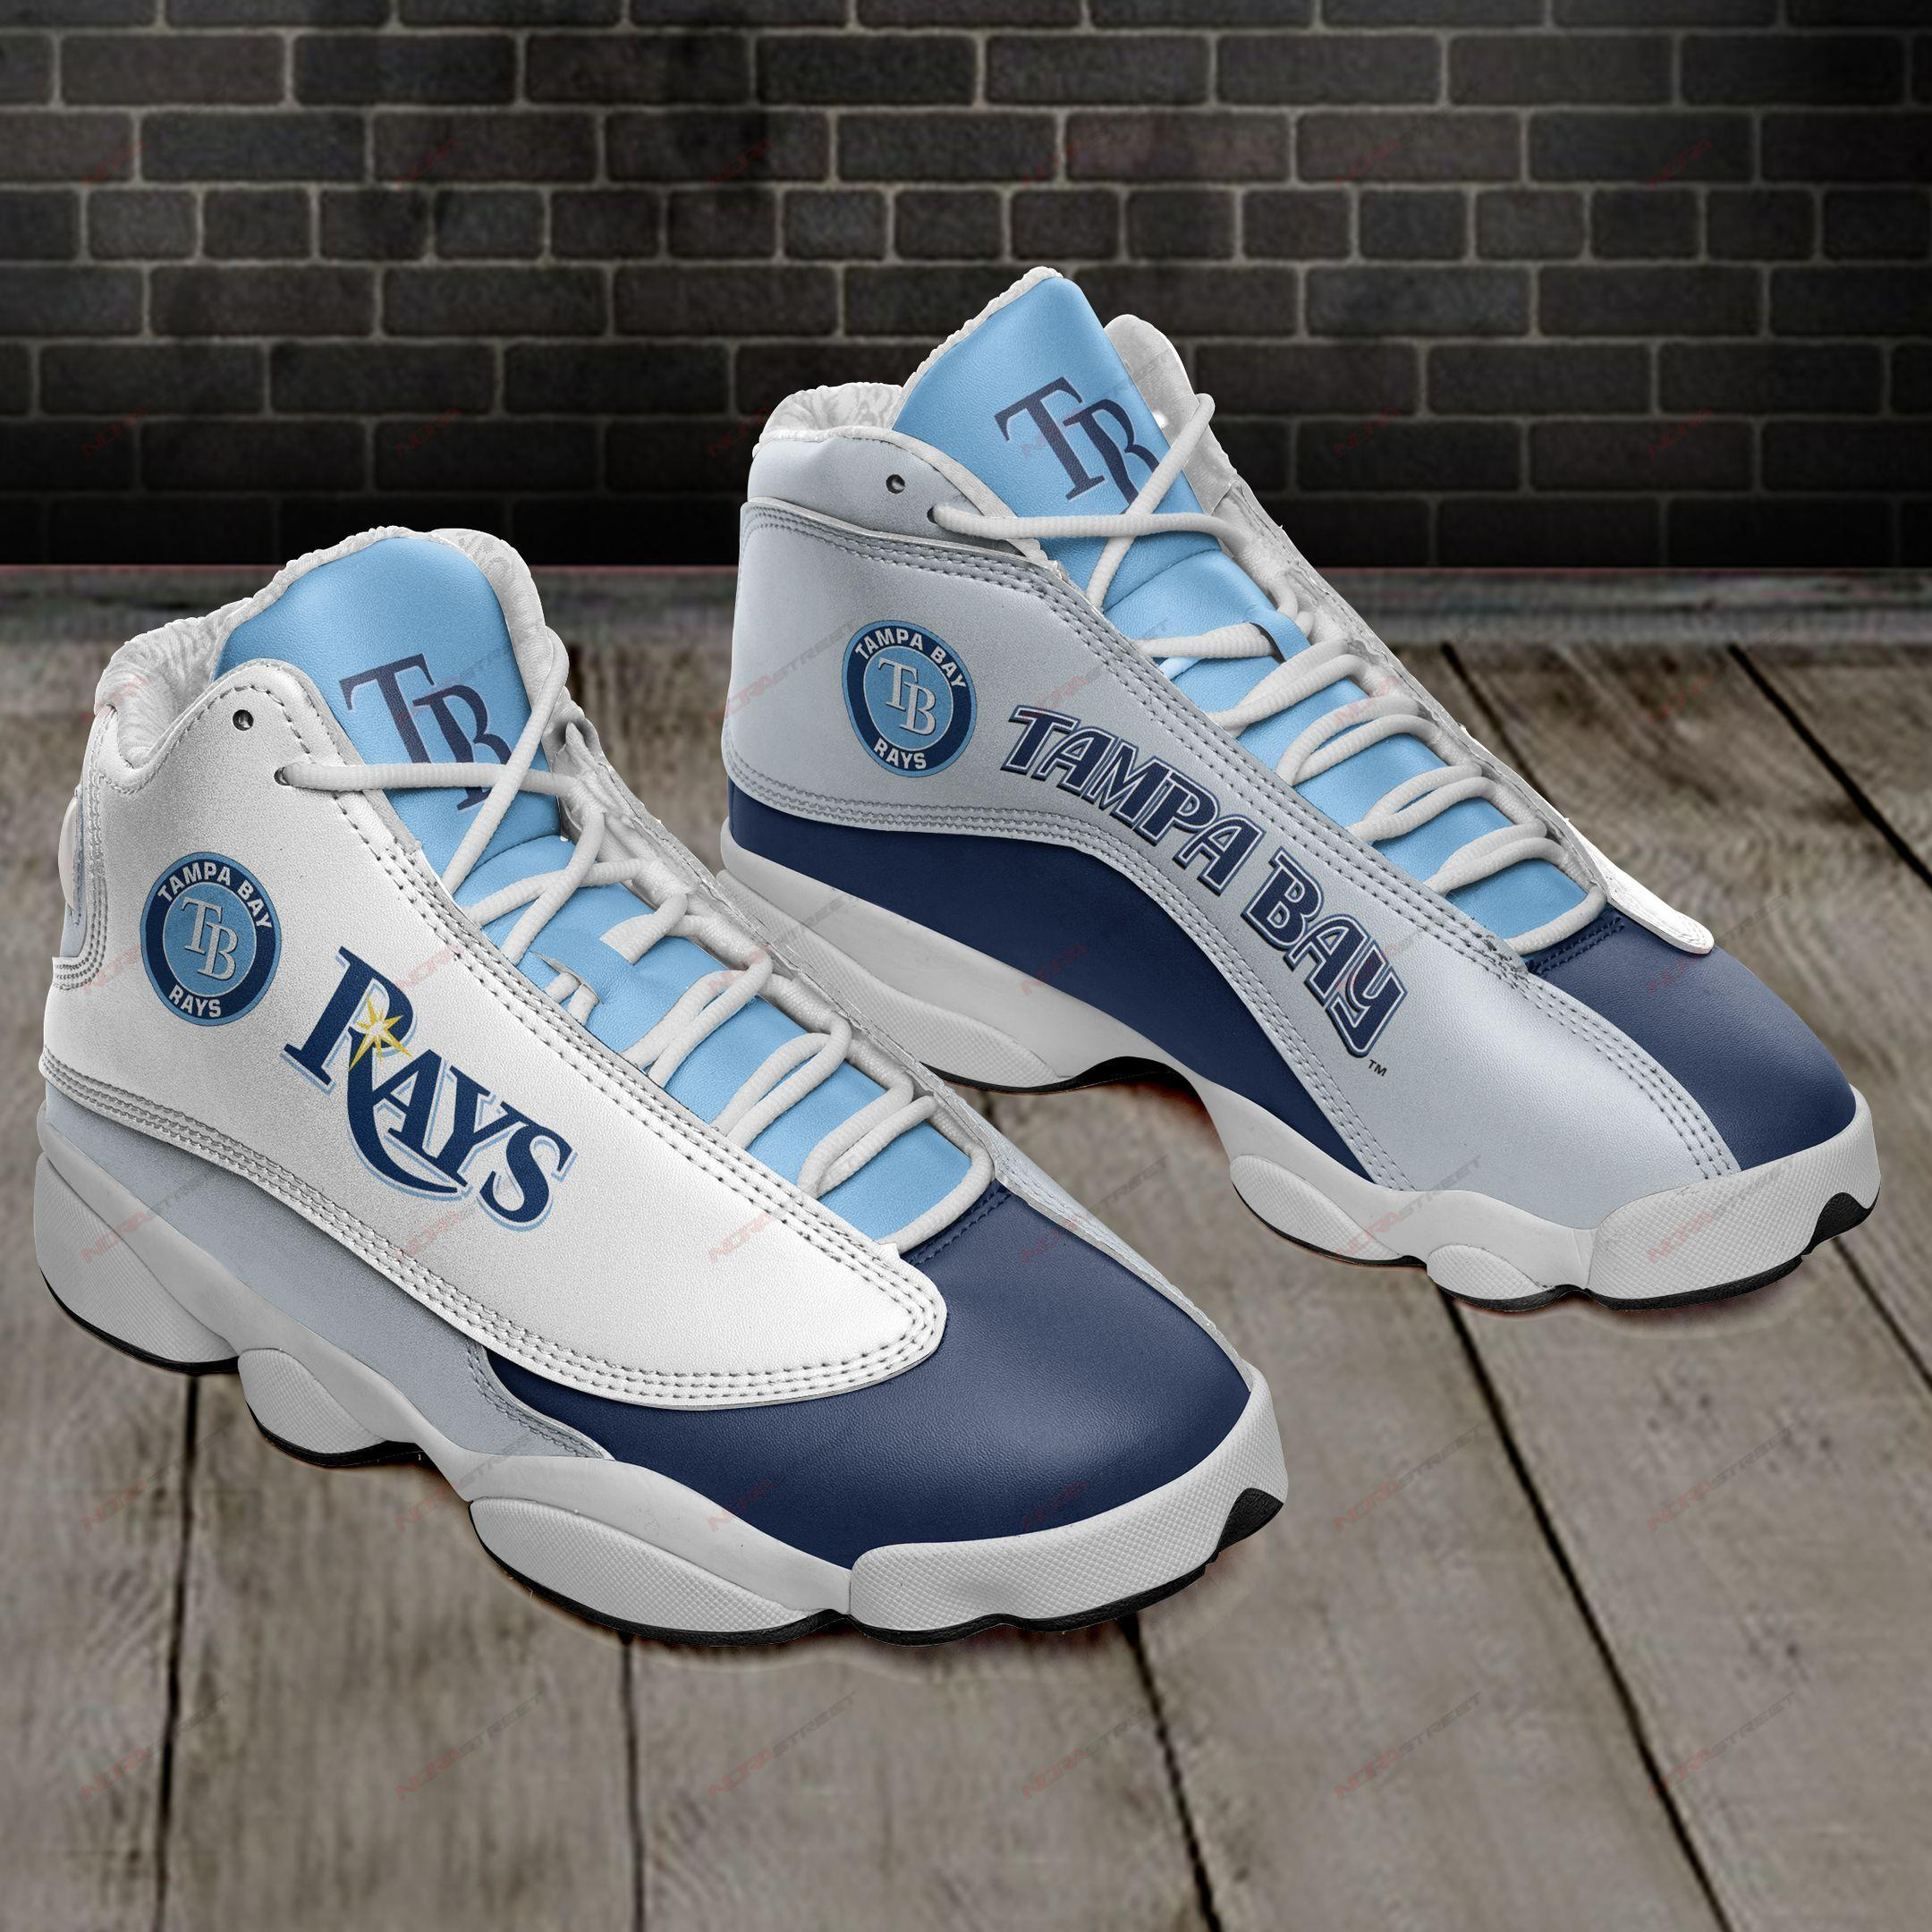 Tampa Bay Rays Air Jordan 13 Sneakers Sport Shoes Full Size